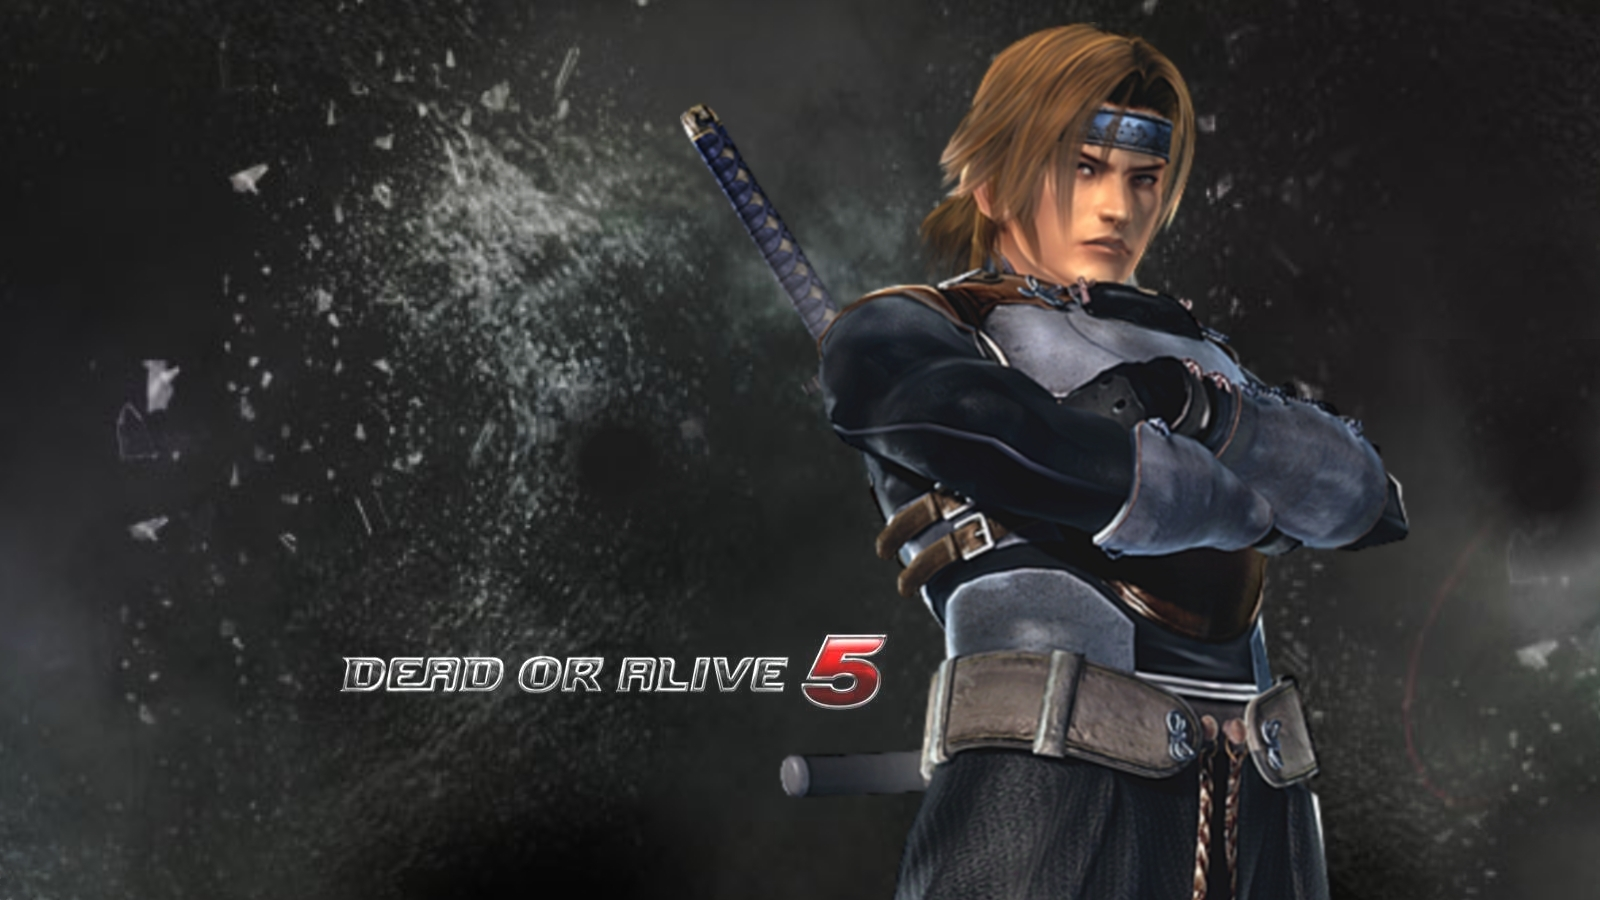 Just Walls DOA 5 Wallpaper 1600x900